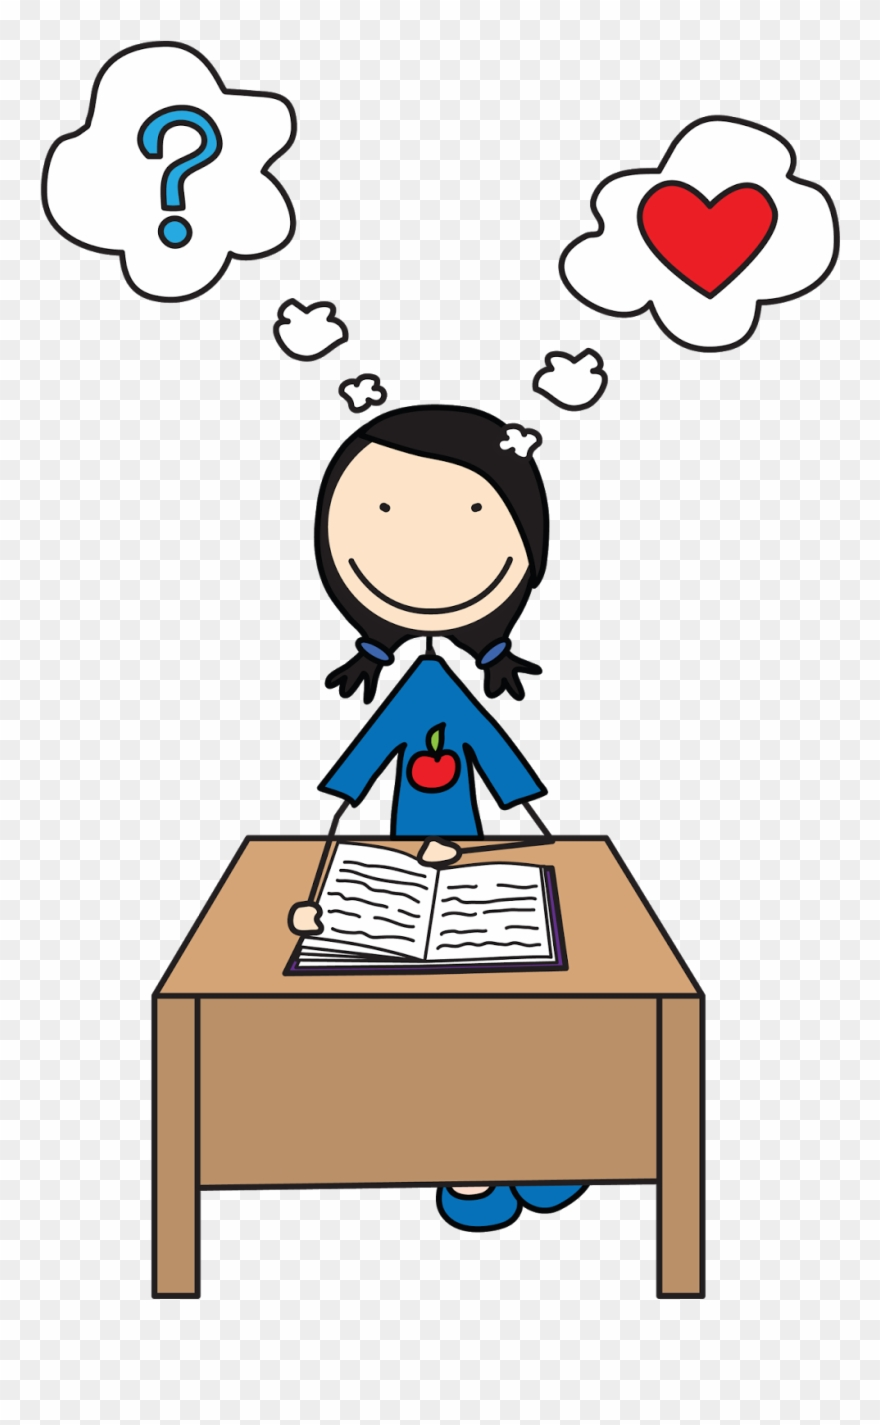 Student clipart person. Students reading girl thinking